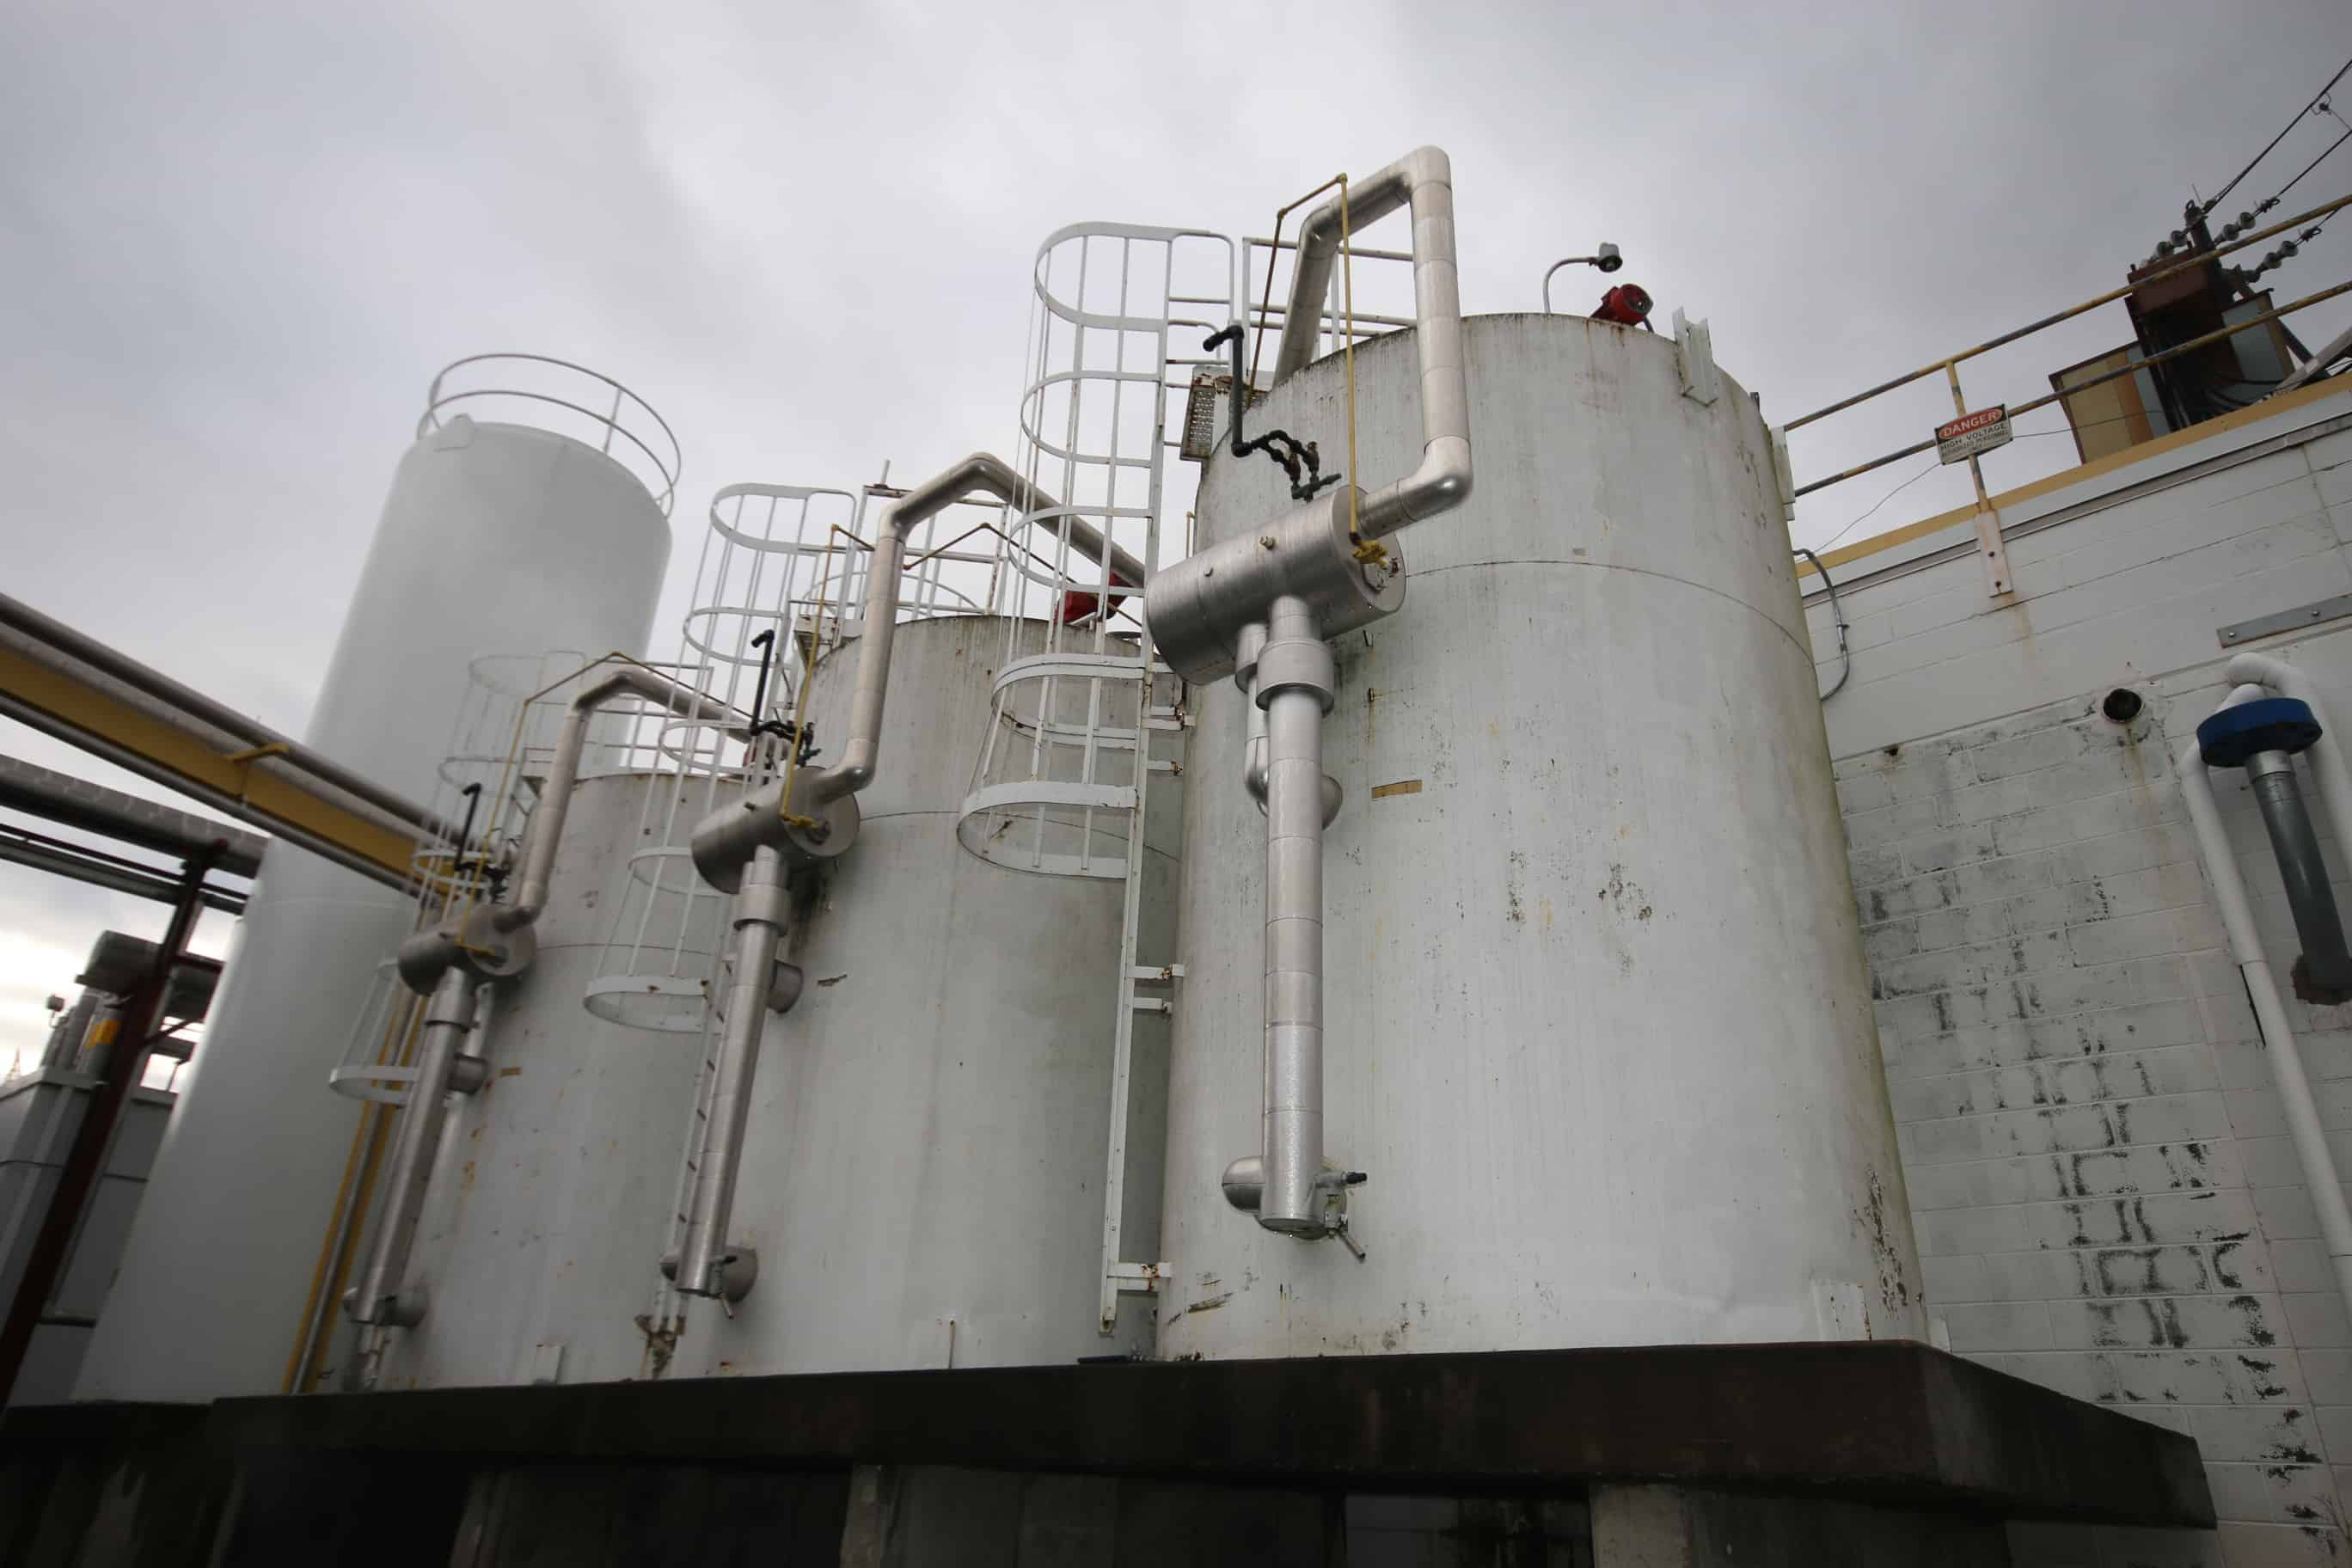 (3) Cherry Burrell 6,000 Gal. NH3 Refrigerated S/S Silos, SN E-065-91, E-340-88 & E-339-88, with Alcoves, Vertical Agitators with Dual 4 Prop Blades, Sprayballs, T/C Air Valves, Level Sensors & Anderson Chart Recorder, Exterior 10 Ft Diam, (Silo #2 & 3)